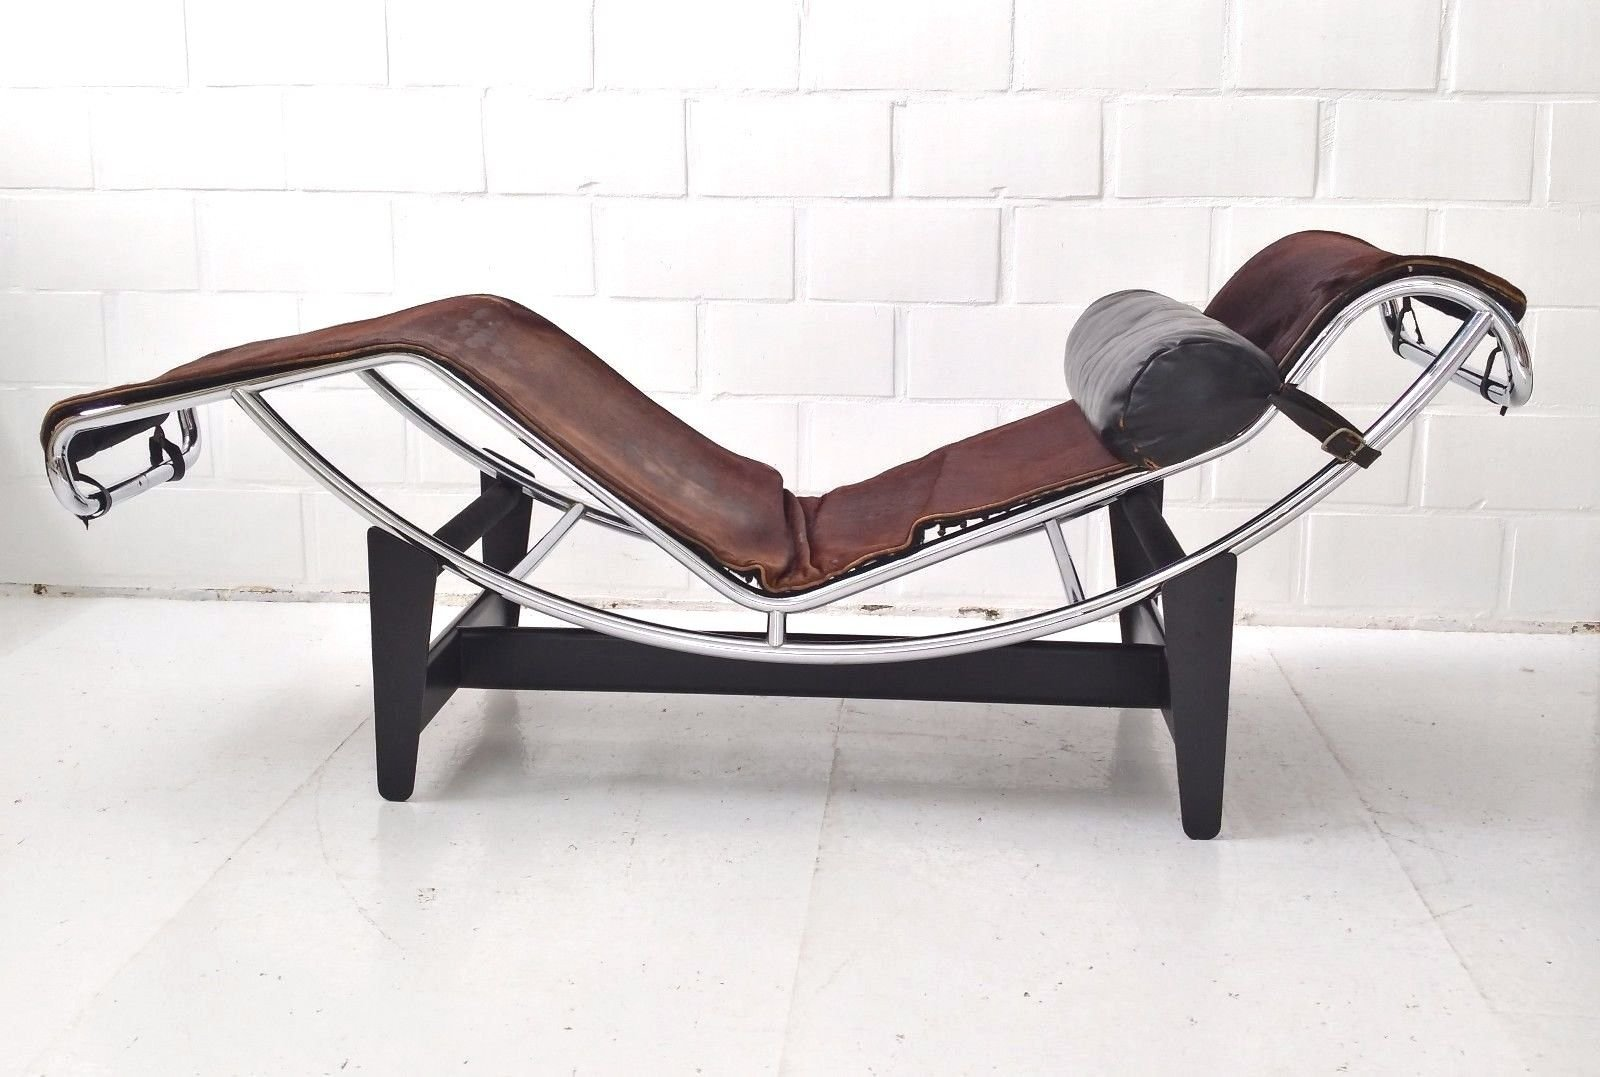 Lc4 chaise longue by le corbusier charlotte perriand for Chaise longue chilienne